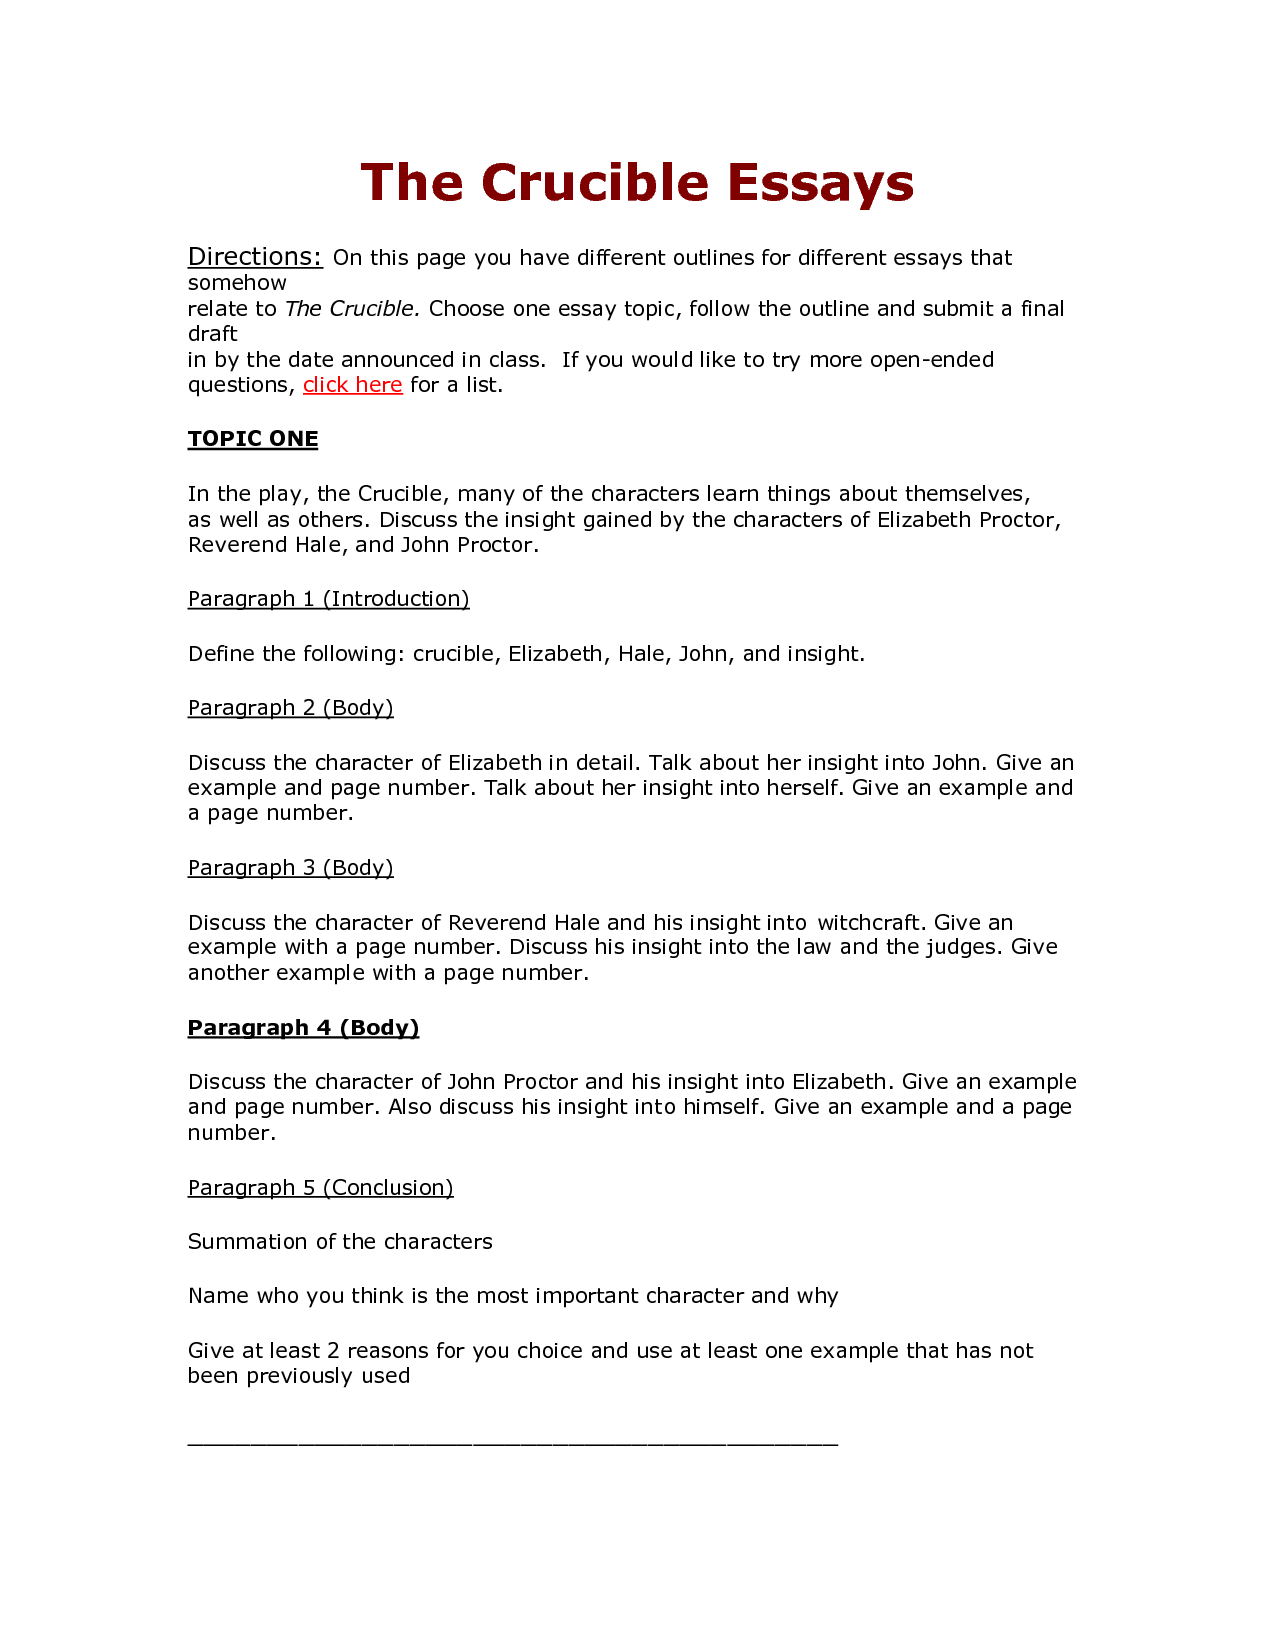 the crucible essay outline 1 thesis paragraph a introduction: the crucible was based in a puritan society where religion was the foundation of everything in the community.